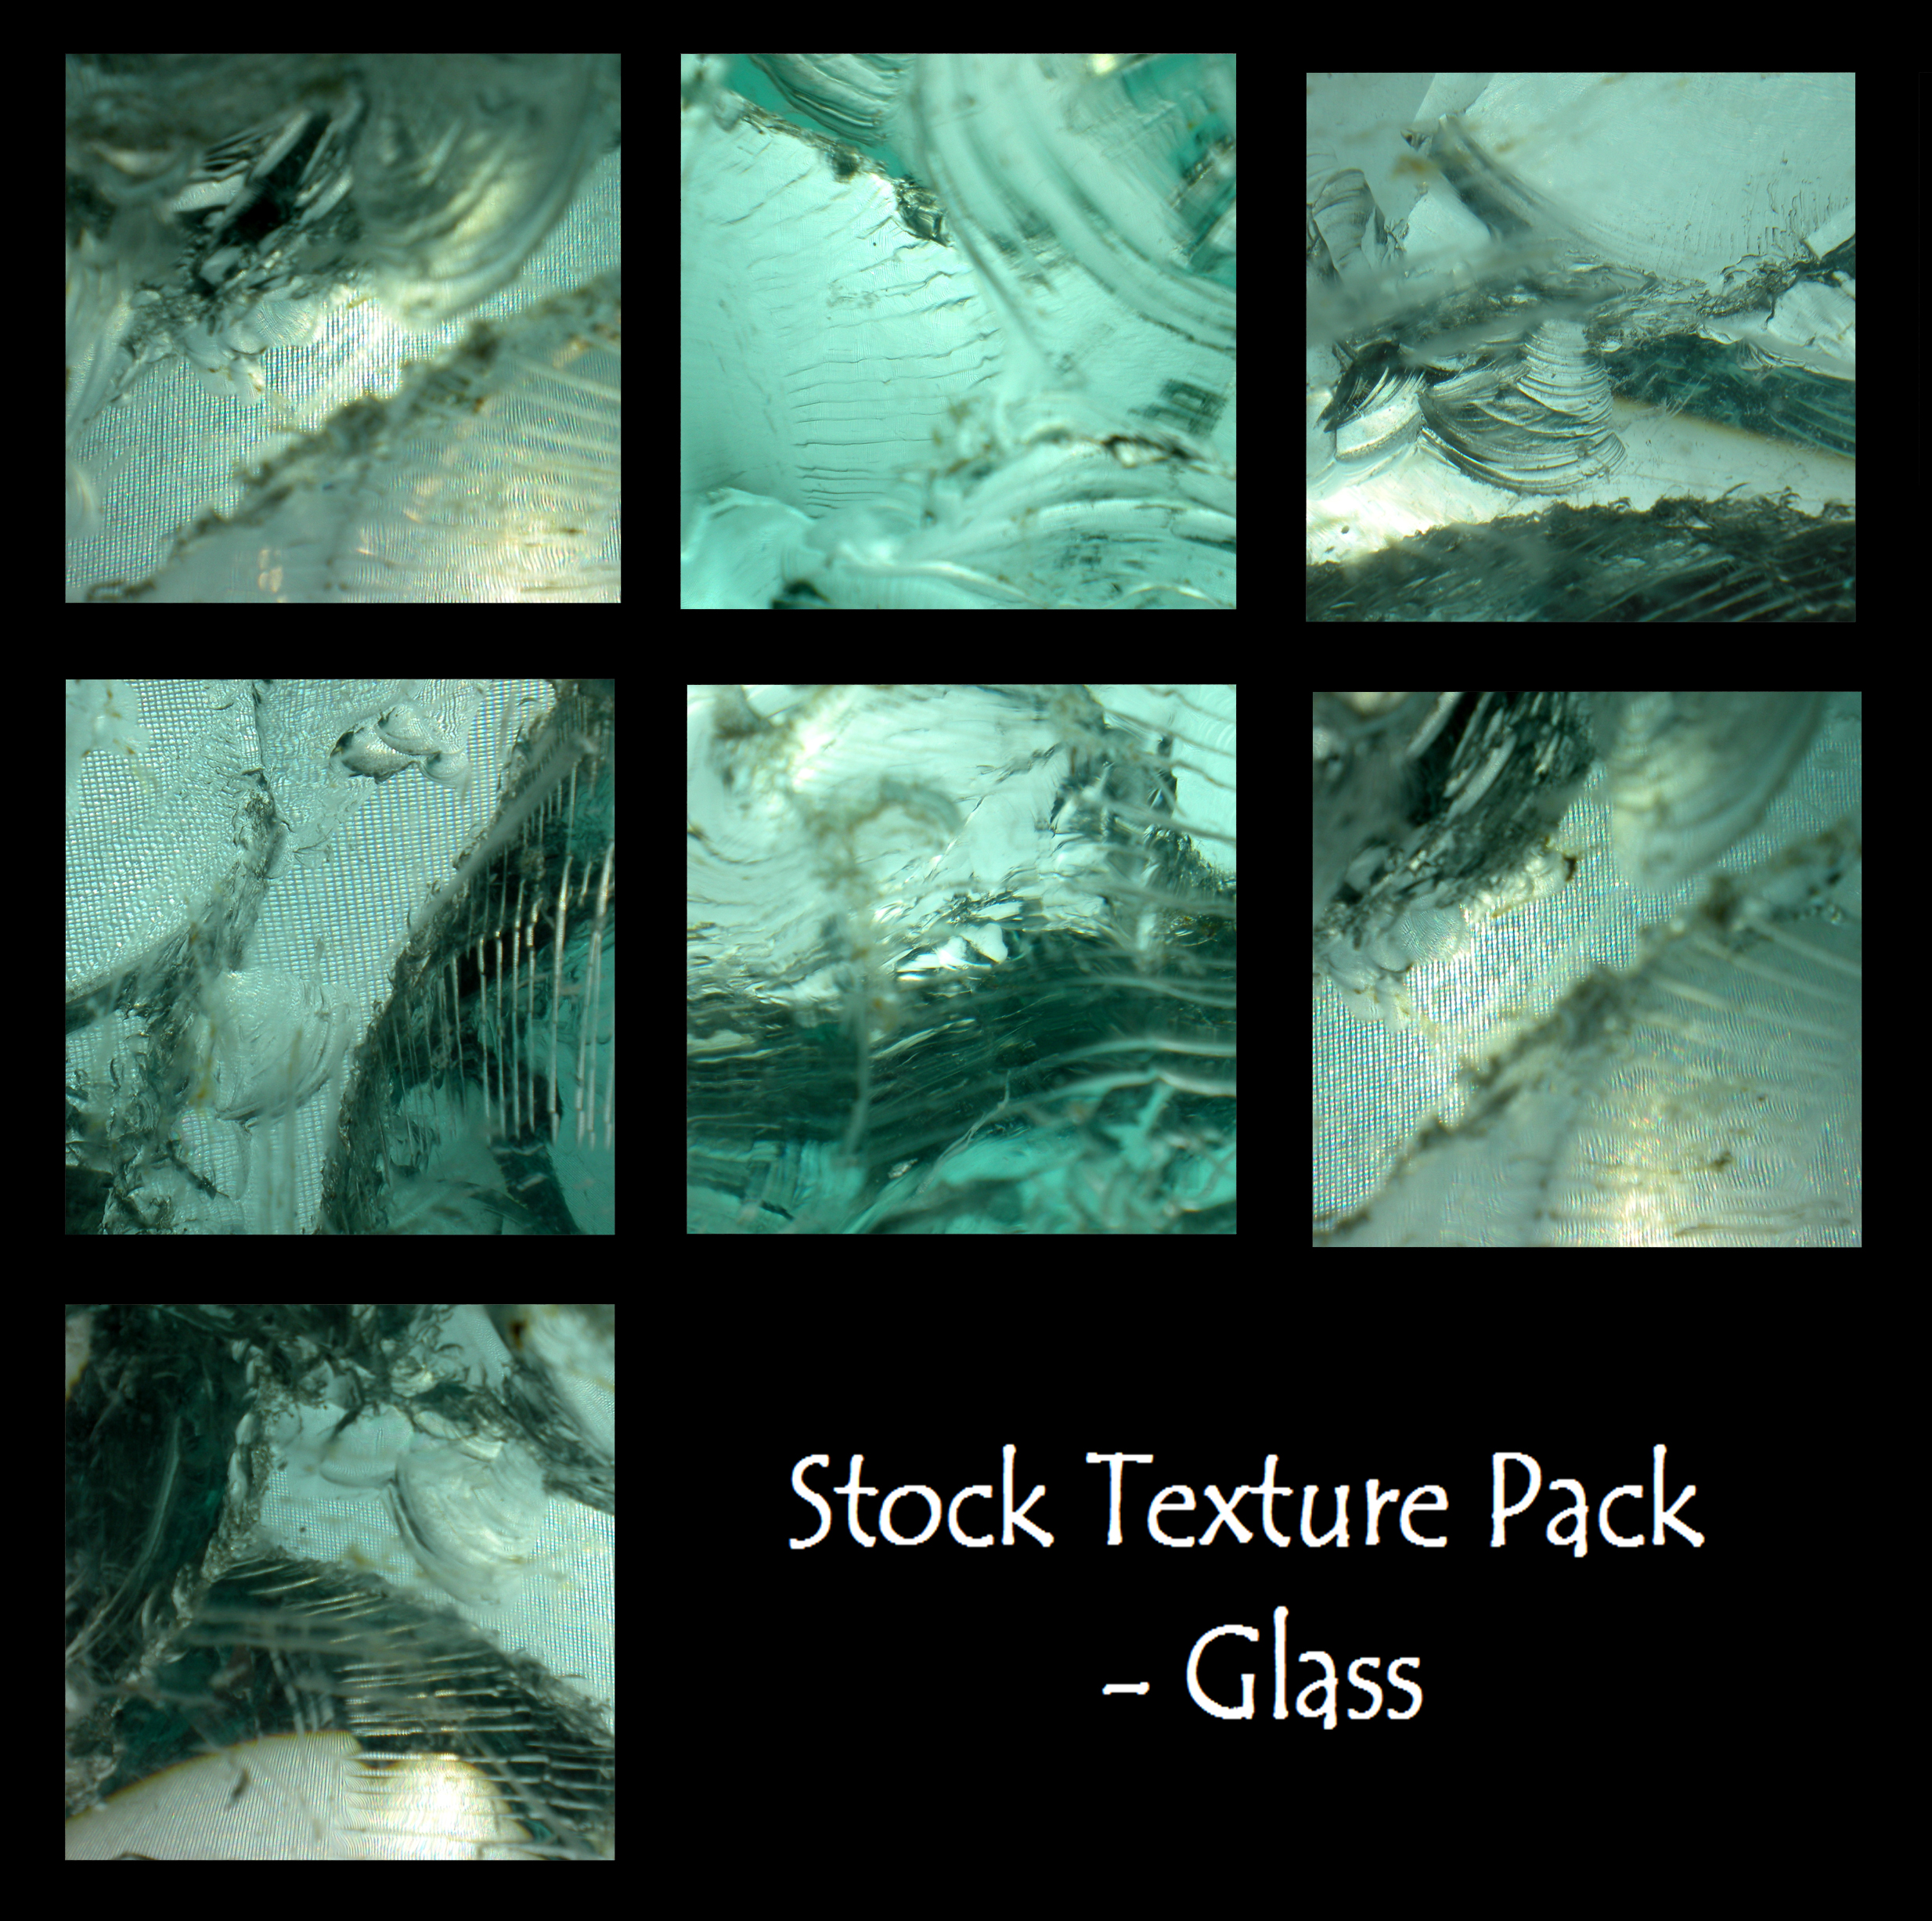 Texture Pack - Glass